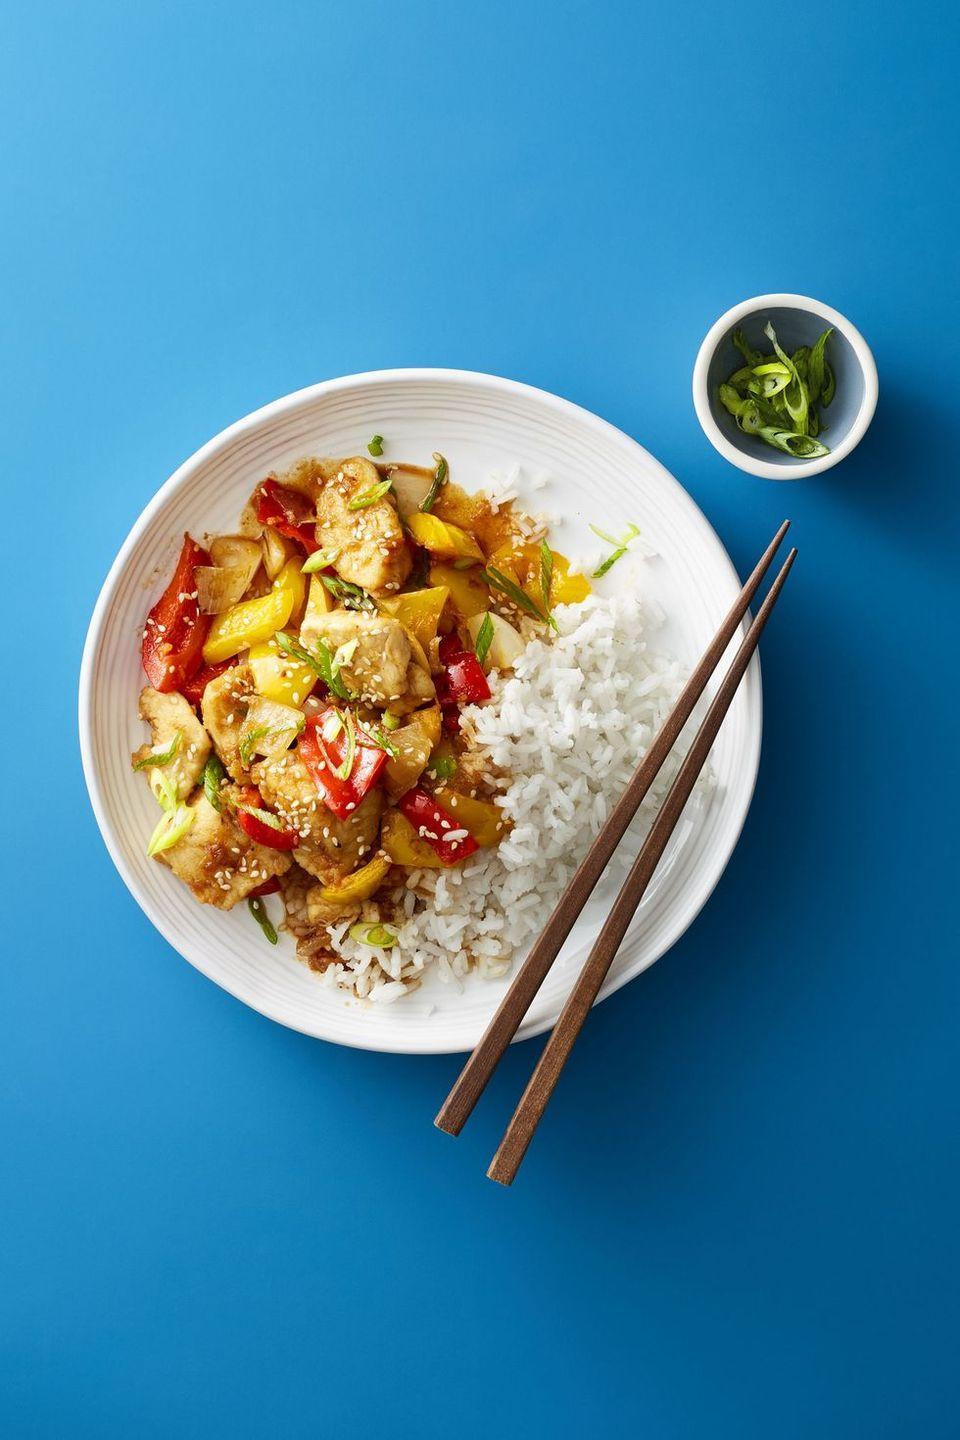 "<p>Commonly found in Chinese restaurants across the U.S., this easy dish is a little sweet, a little spicy and a whole lot of yum.</p><p><em><a href=""https://www.goodhousekeeping.com/food-recipes/easy/a47684/sesame-chicken-stir-fry-recipe/"" rel=""nofollow noopener"" target=""_blank"" data-ylk=""slk:Get the recipe for Sesame Chicken Stir-Fry »"" class=""link rapid-noclick-resp"">Get the recipe for Sesame Chicken Stir-Fry »</a></em></p>"